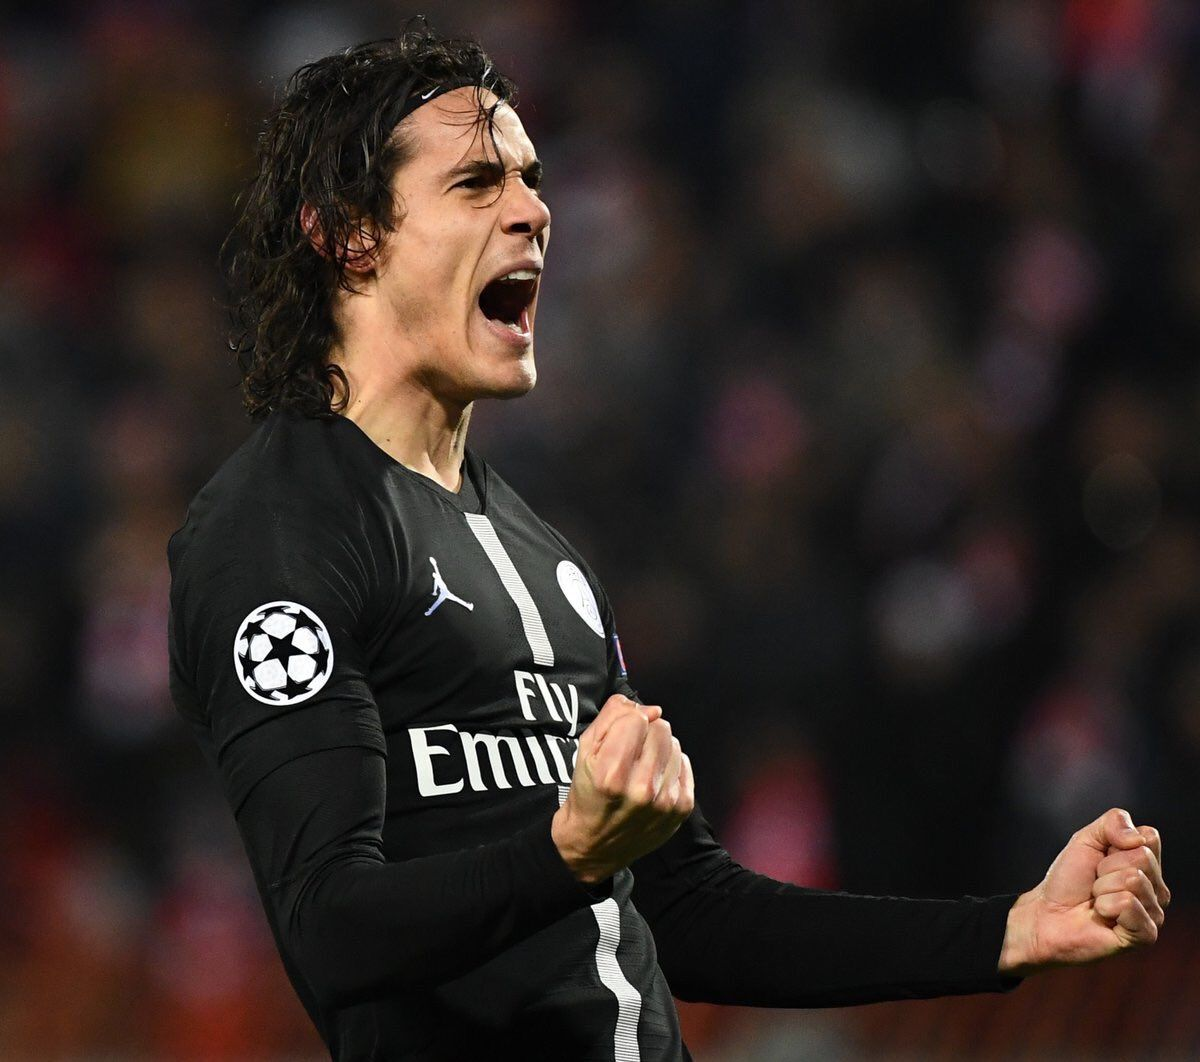 Edinson Cavani has confirmed that he wishes to stay at Paris Saint-Germain until the end of his current contract in 2020.#Ligue1 #PSG #France